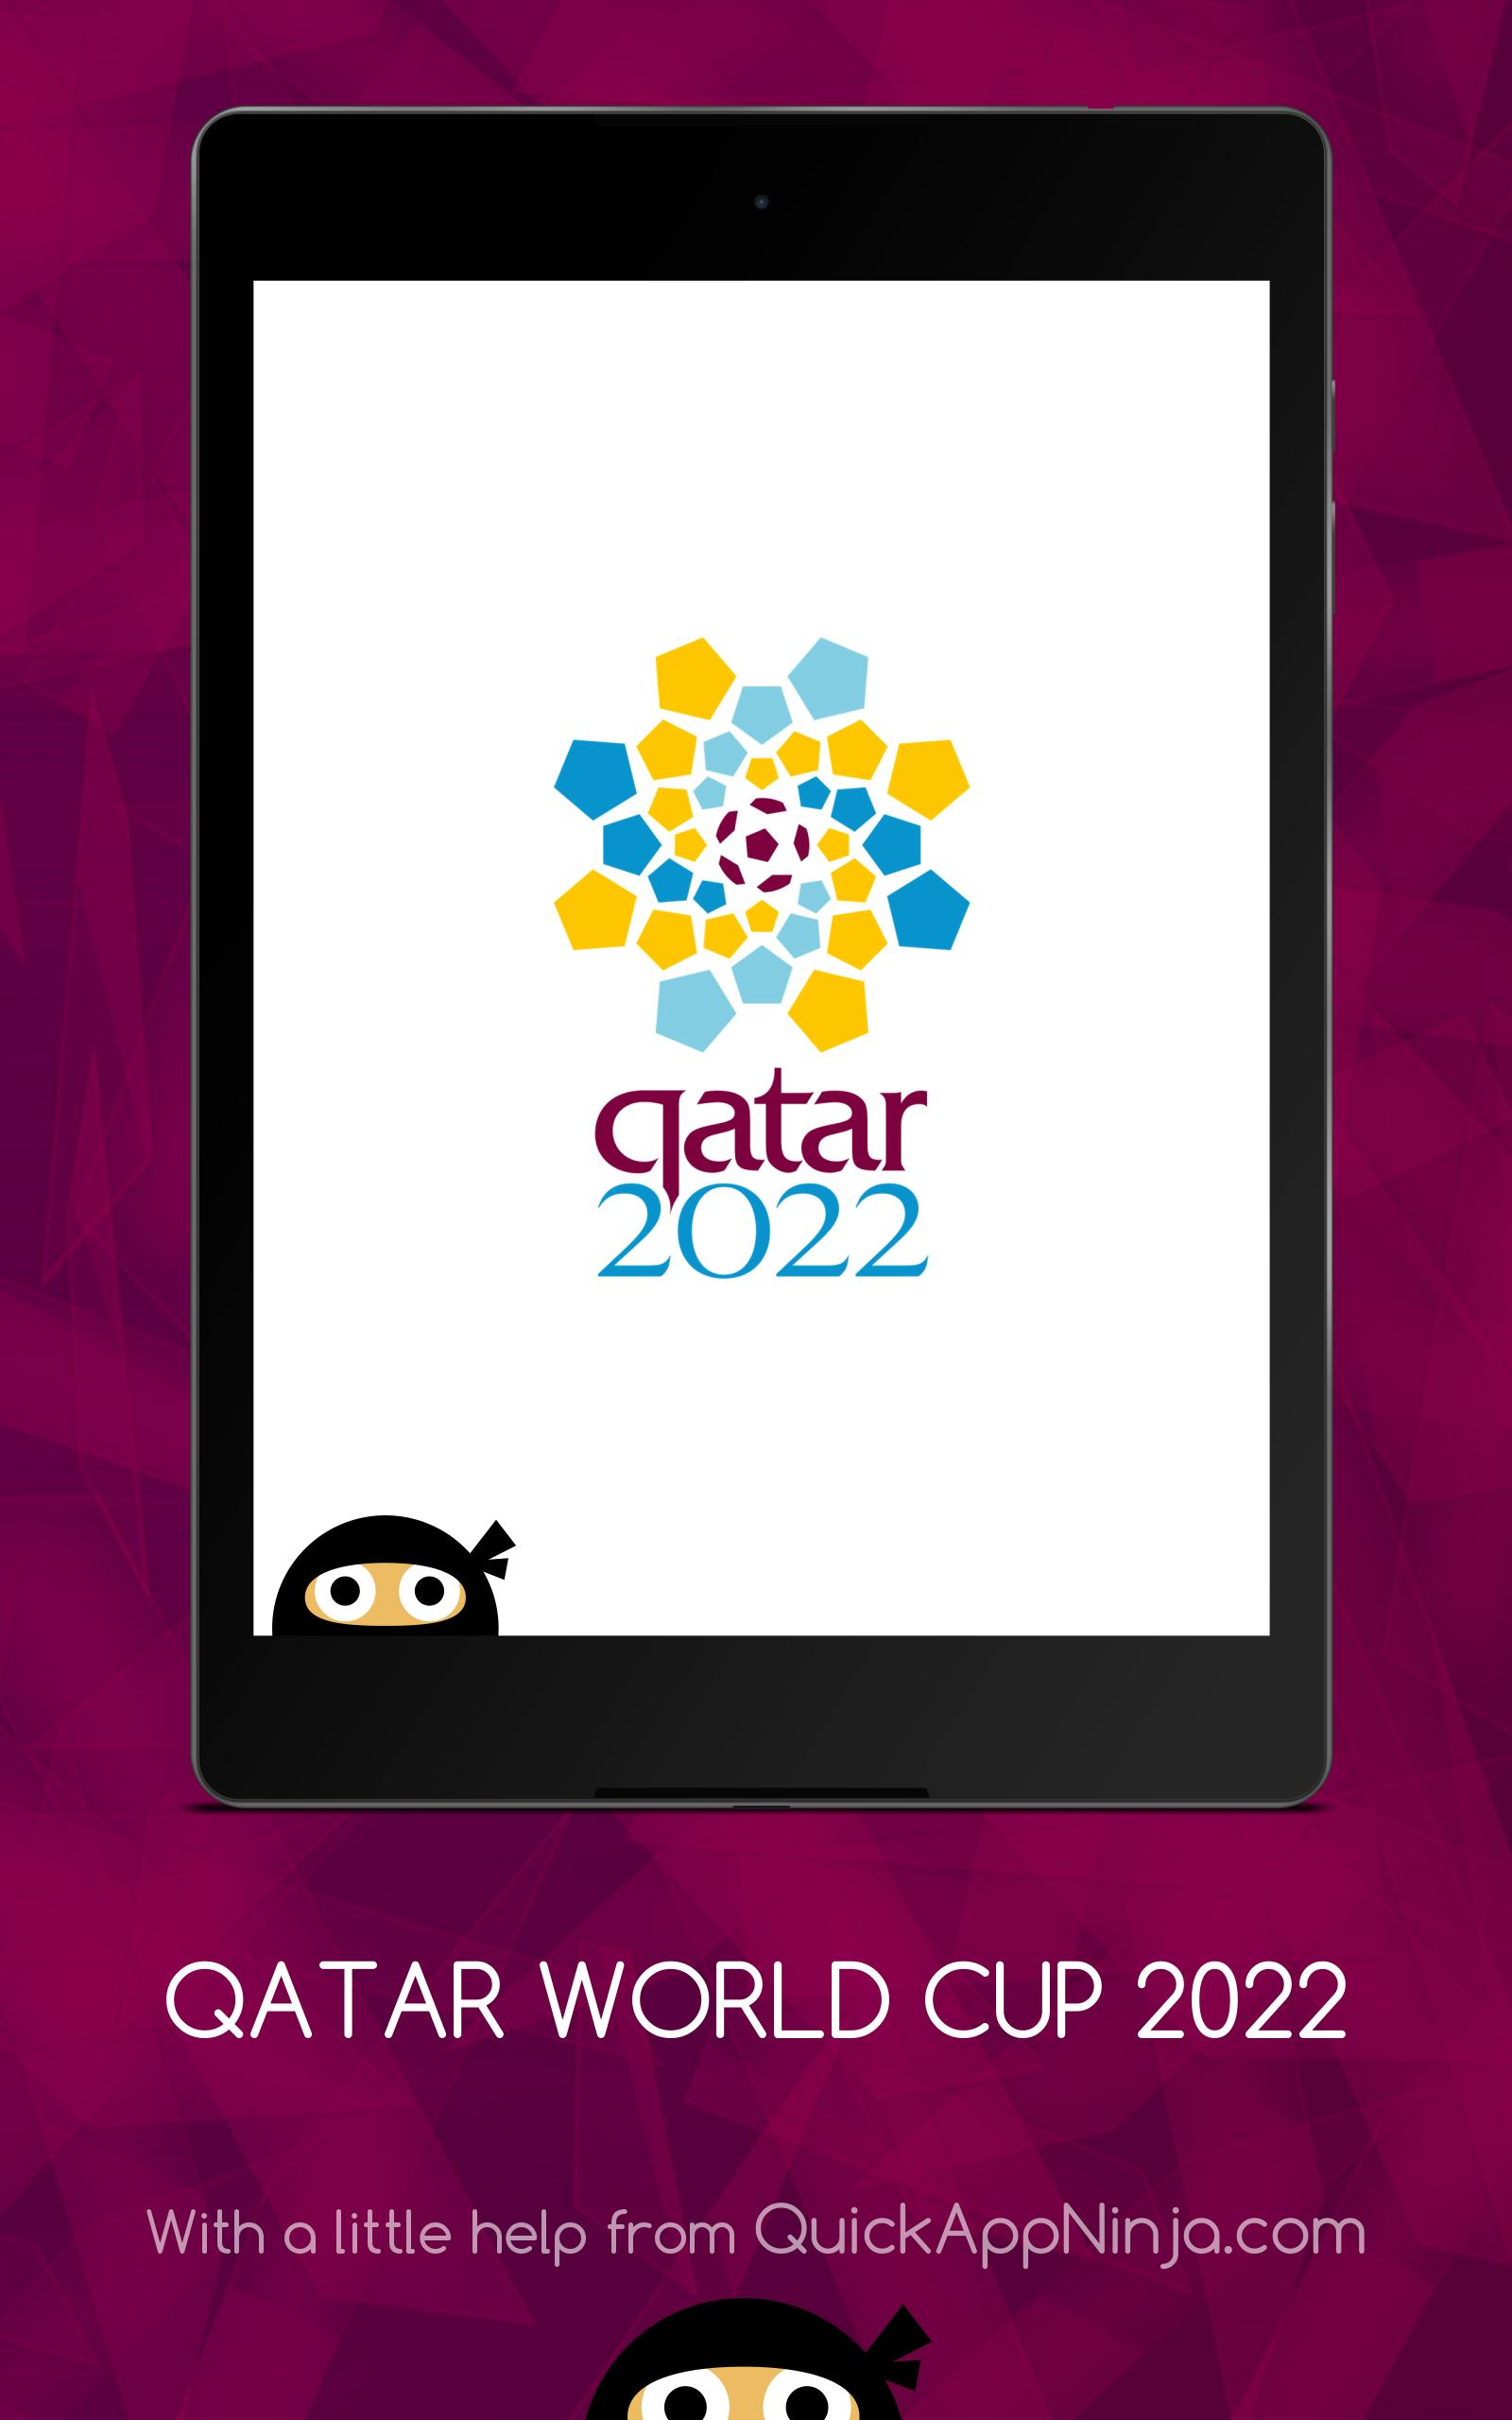 Qatar World Cup 2022 for Android - APK Download